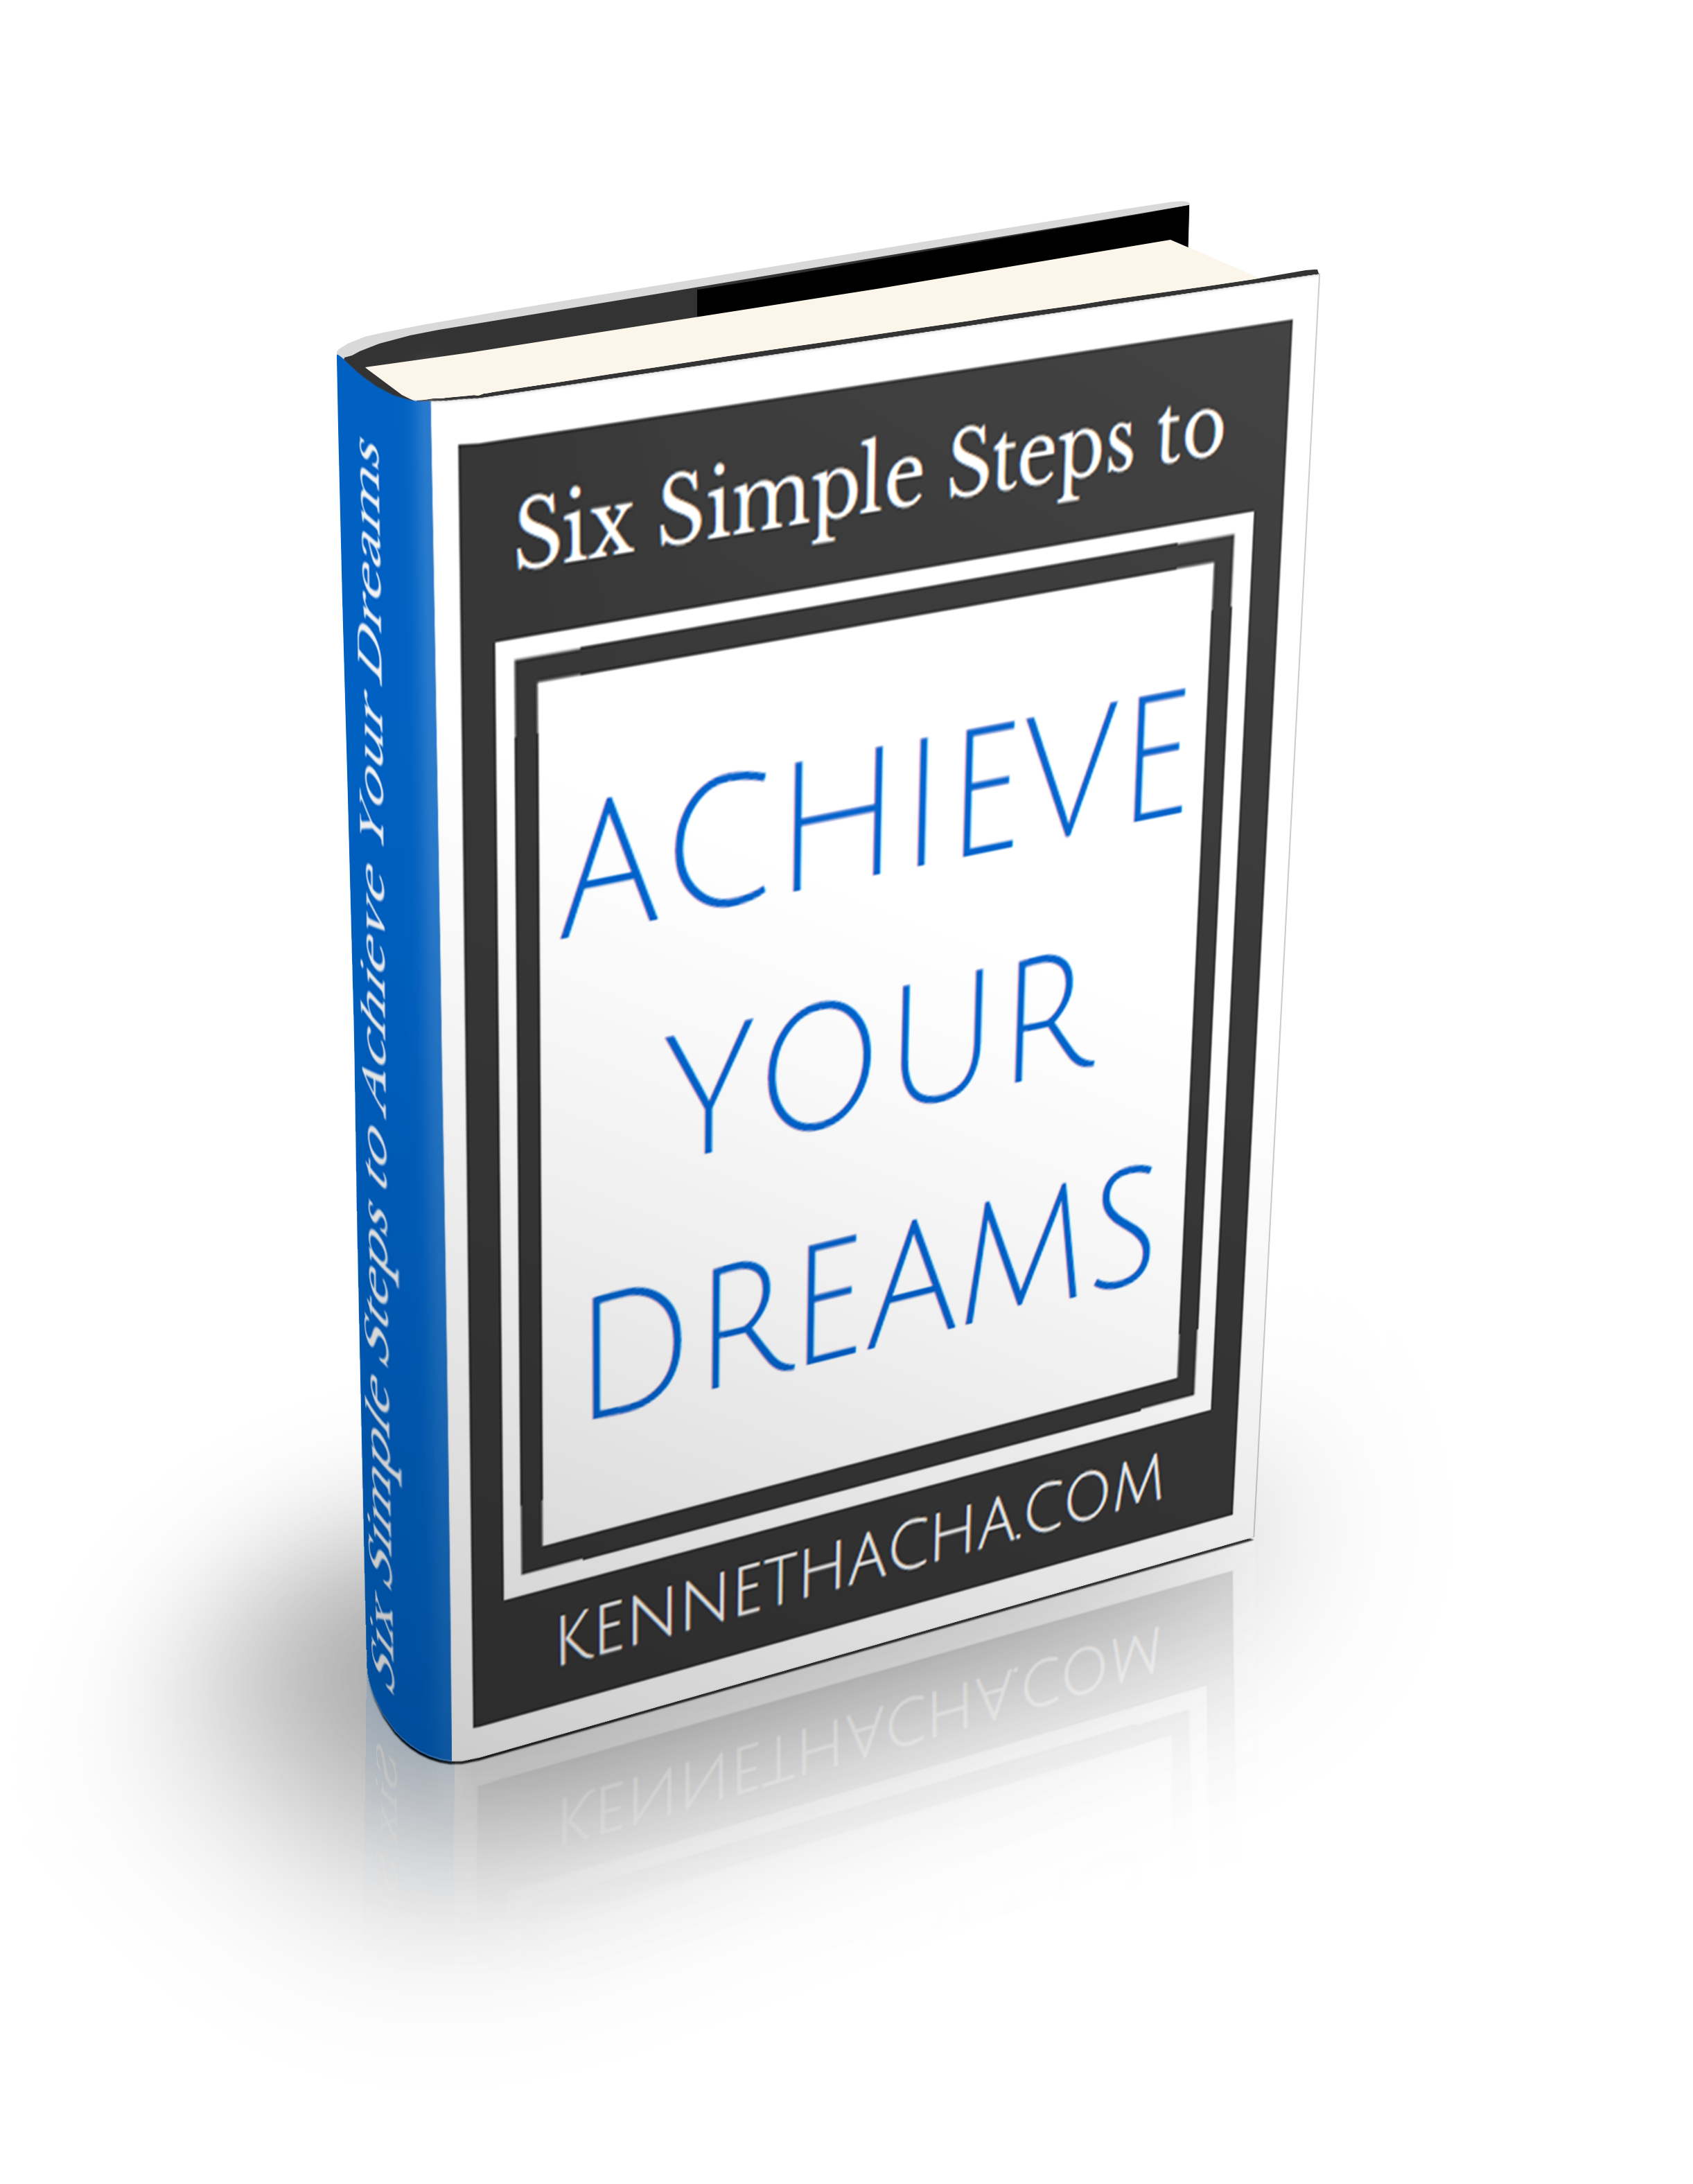 Six Simpe Steps ebook cover